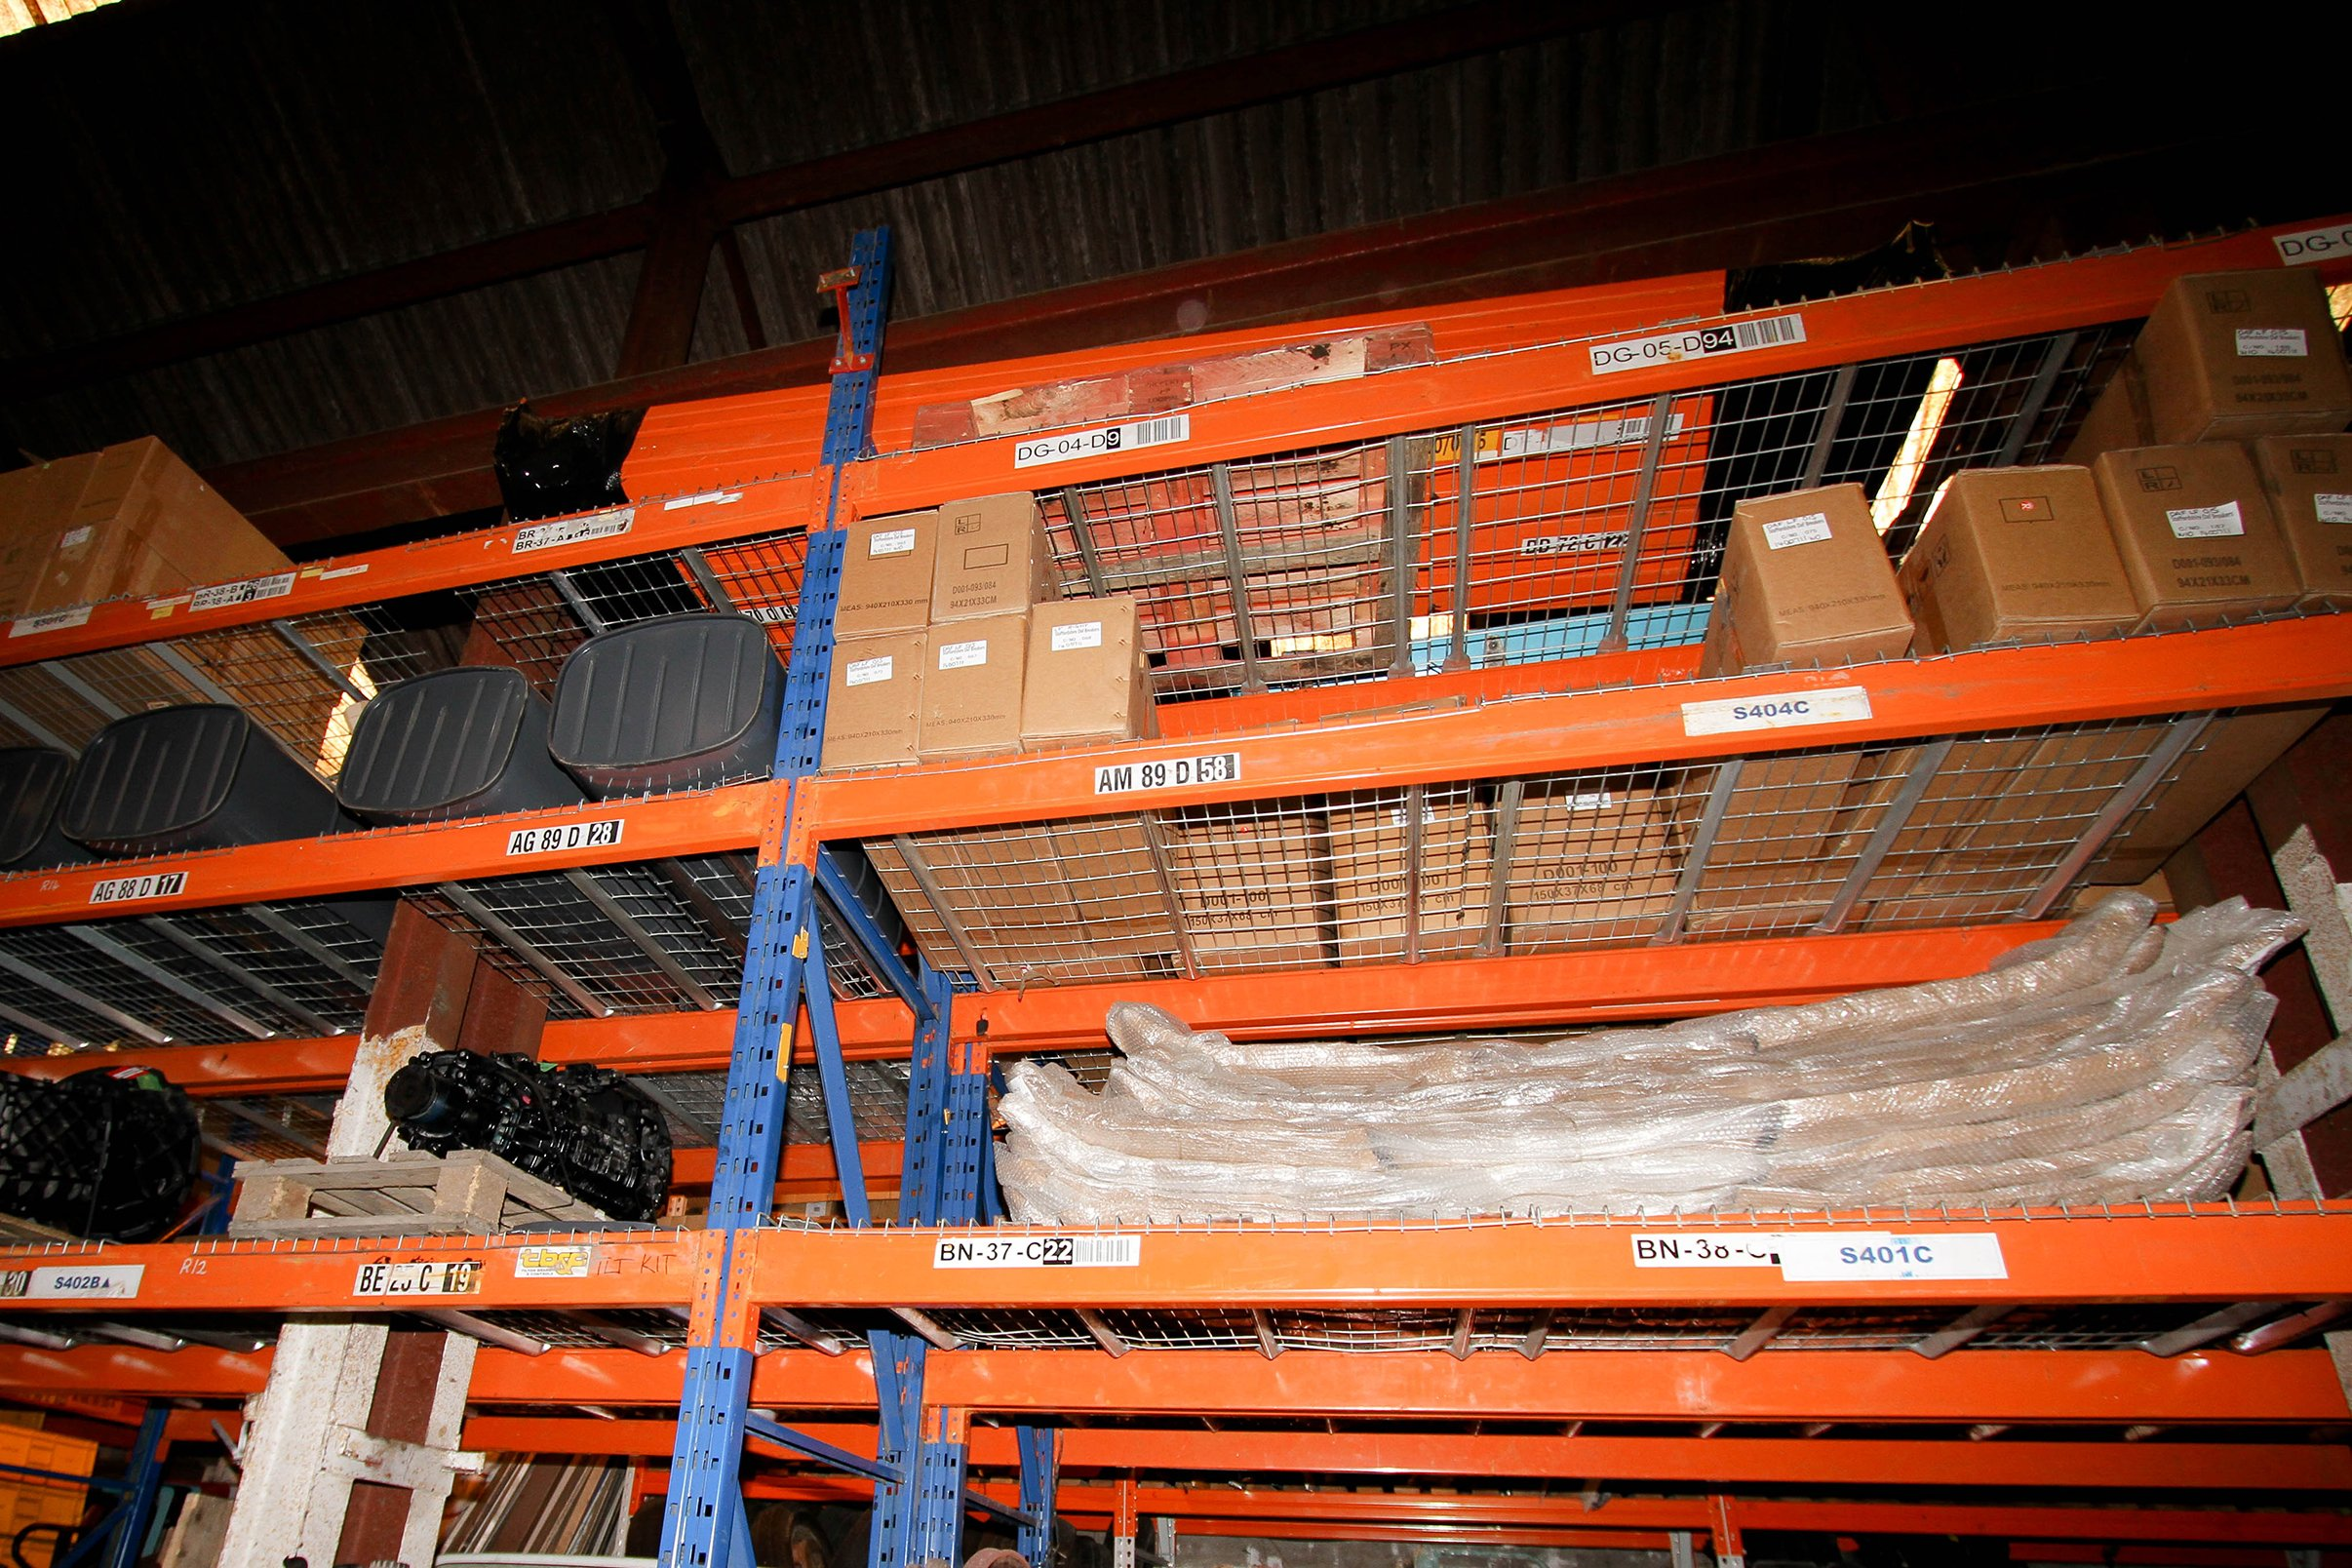 DAF spare parts on a rack